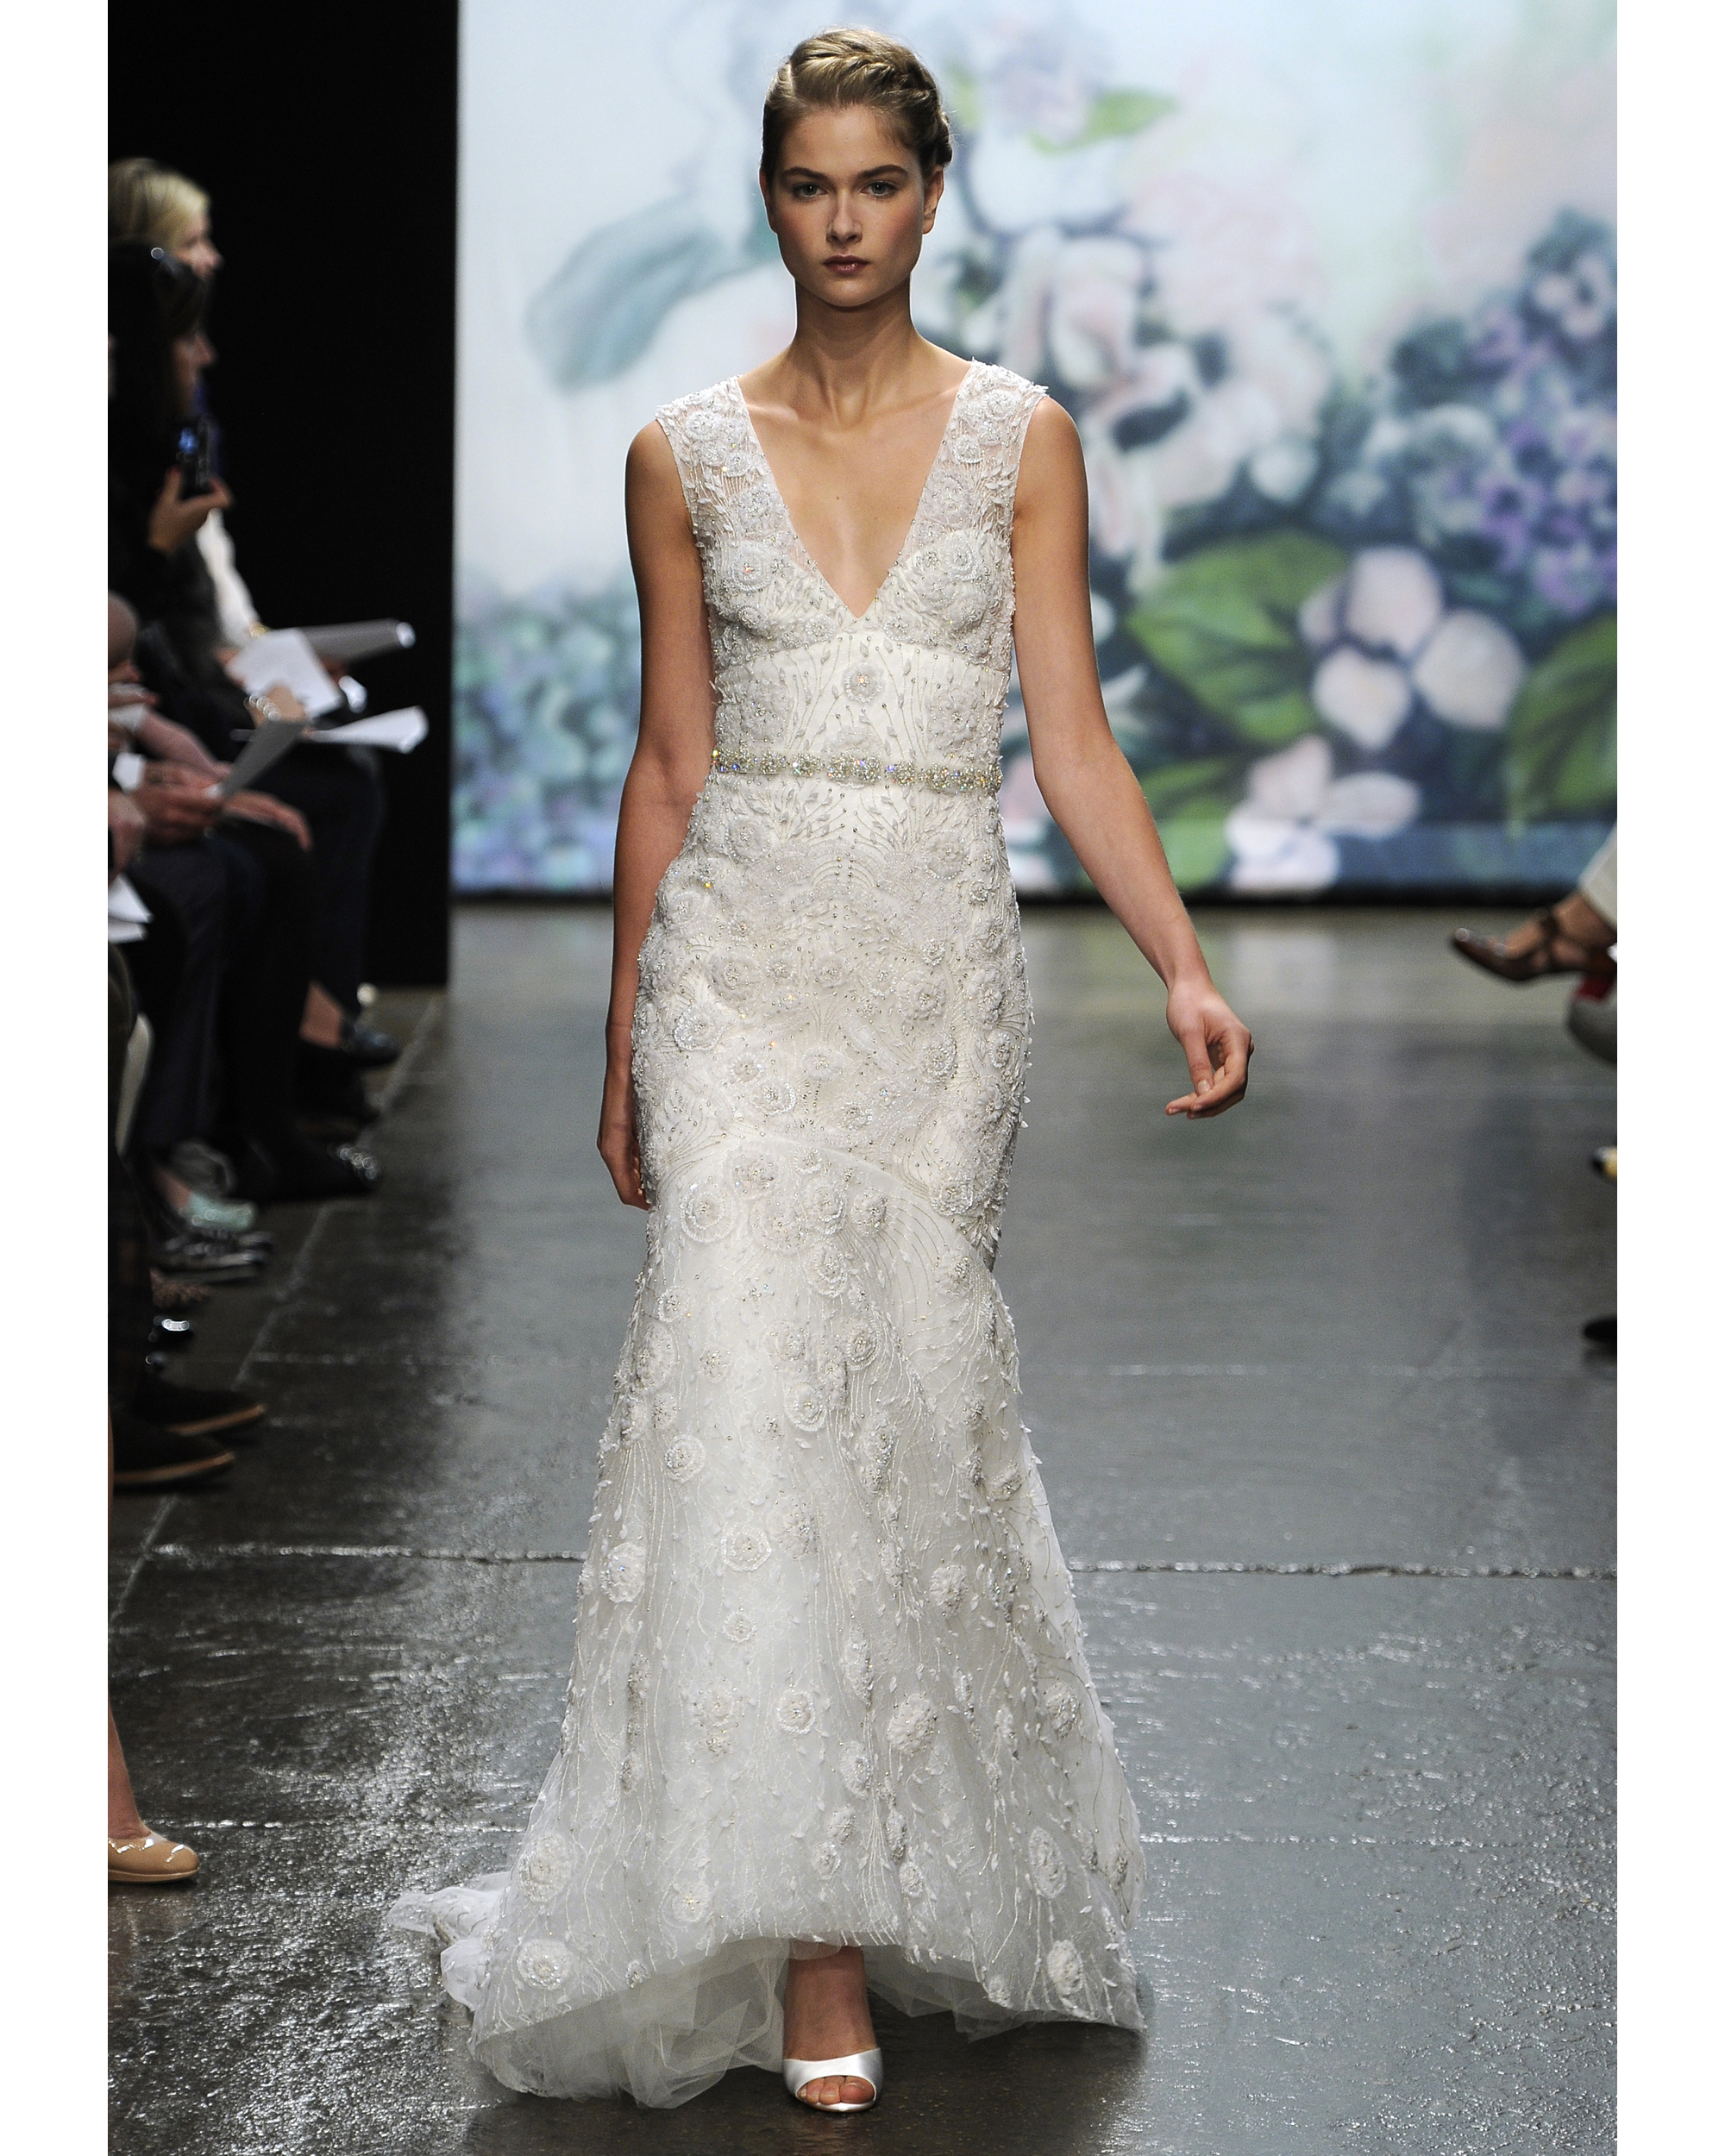 Glamorous Old Hollywood-Style Wedding Dresses, Fall 2012